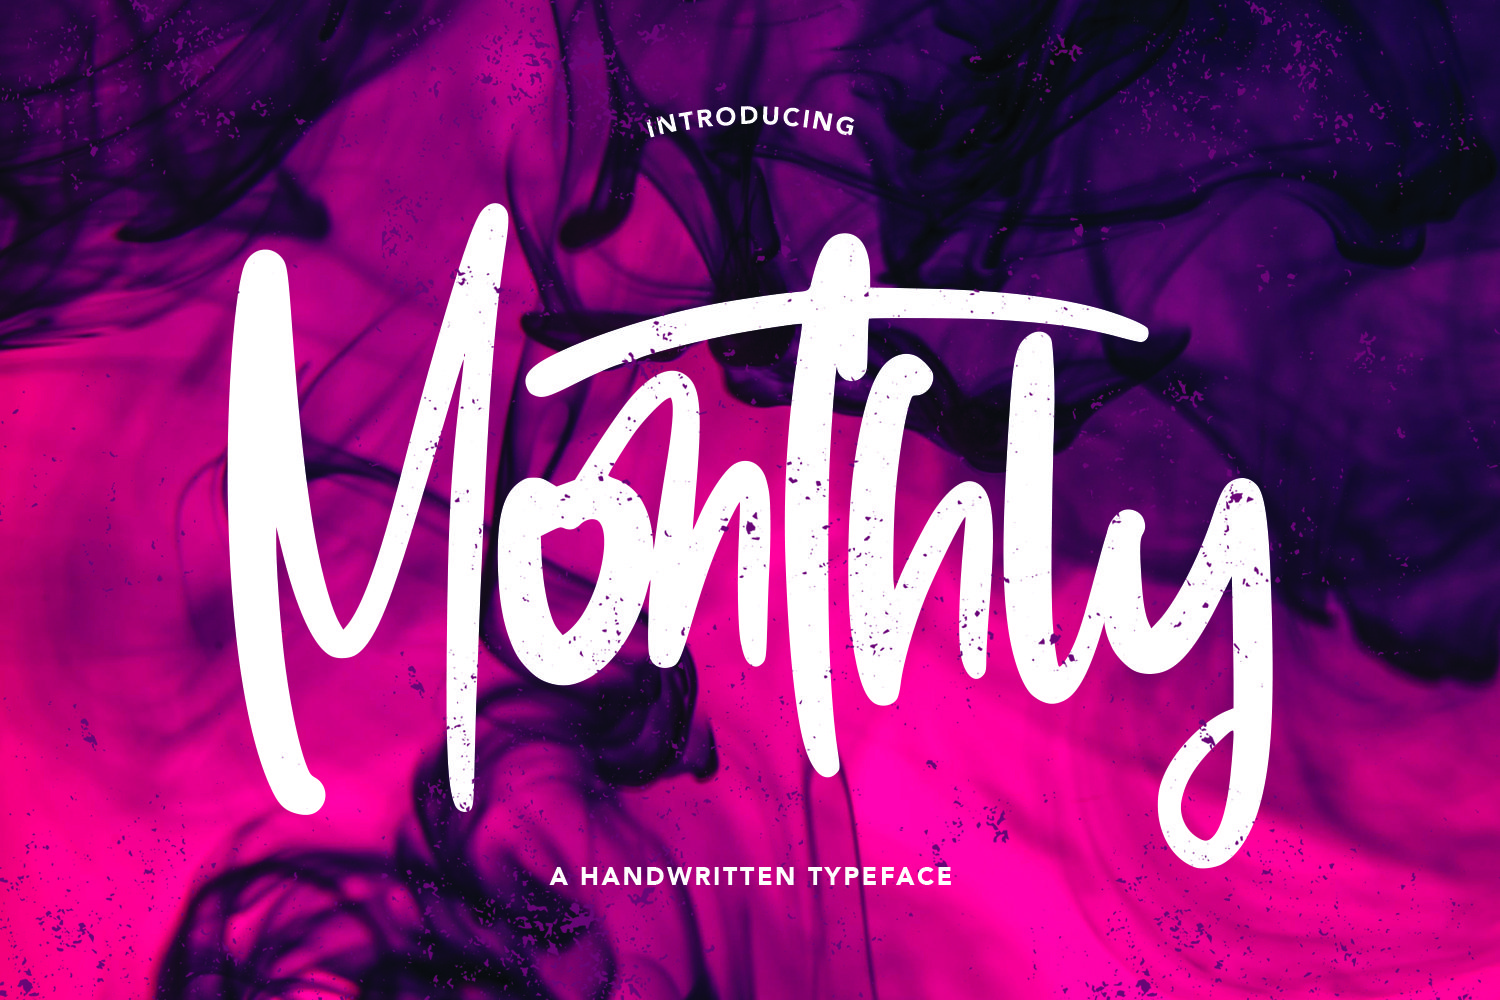 Monthly - Handwritten Typeface Font example image 1